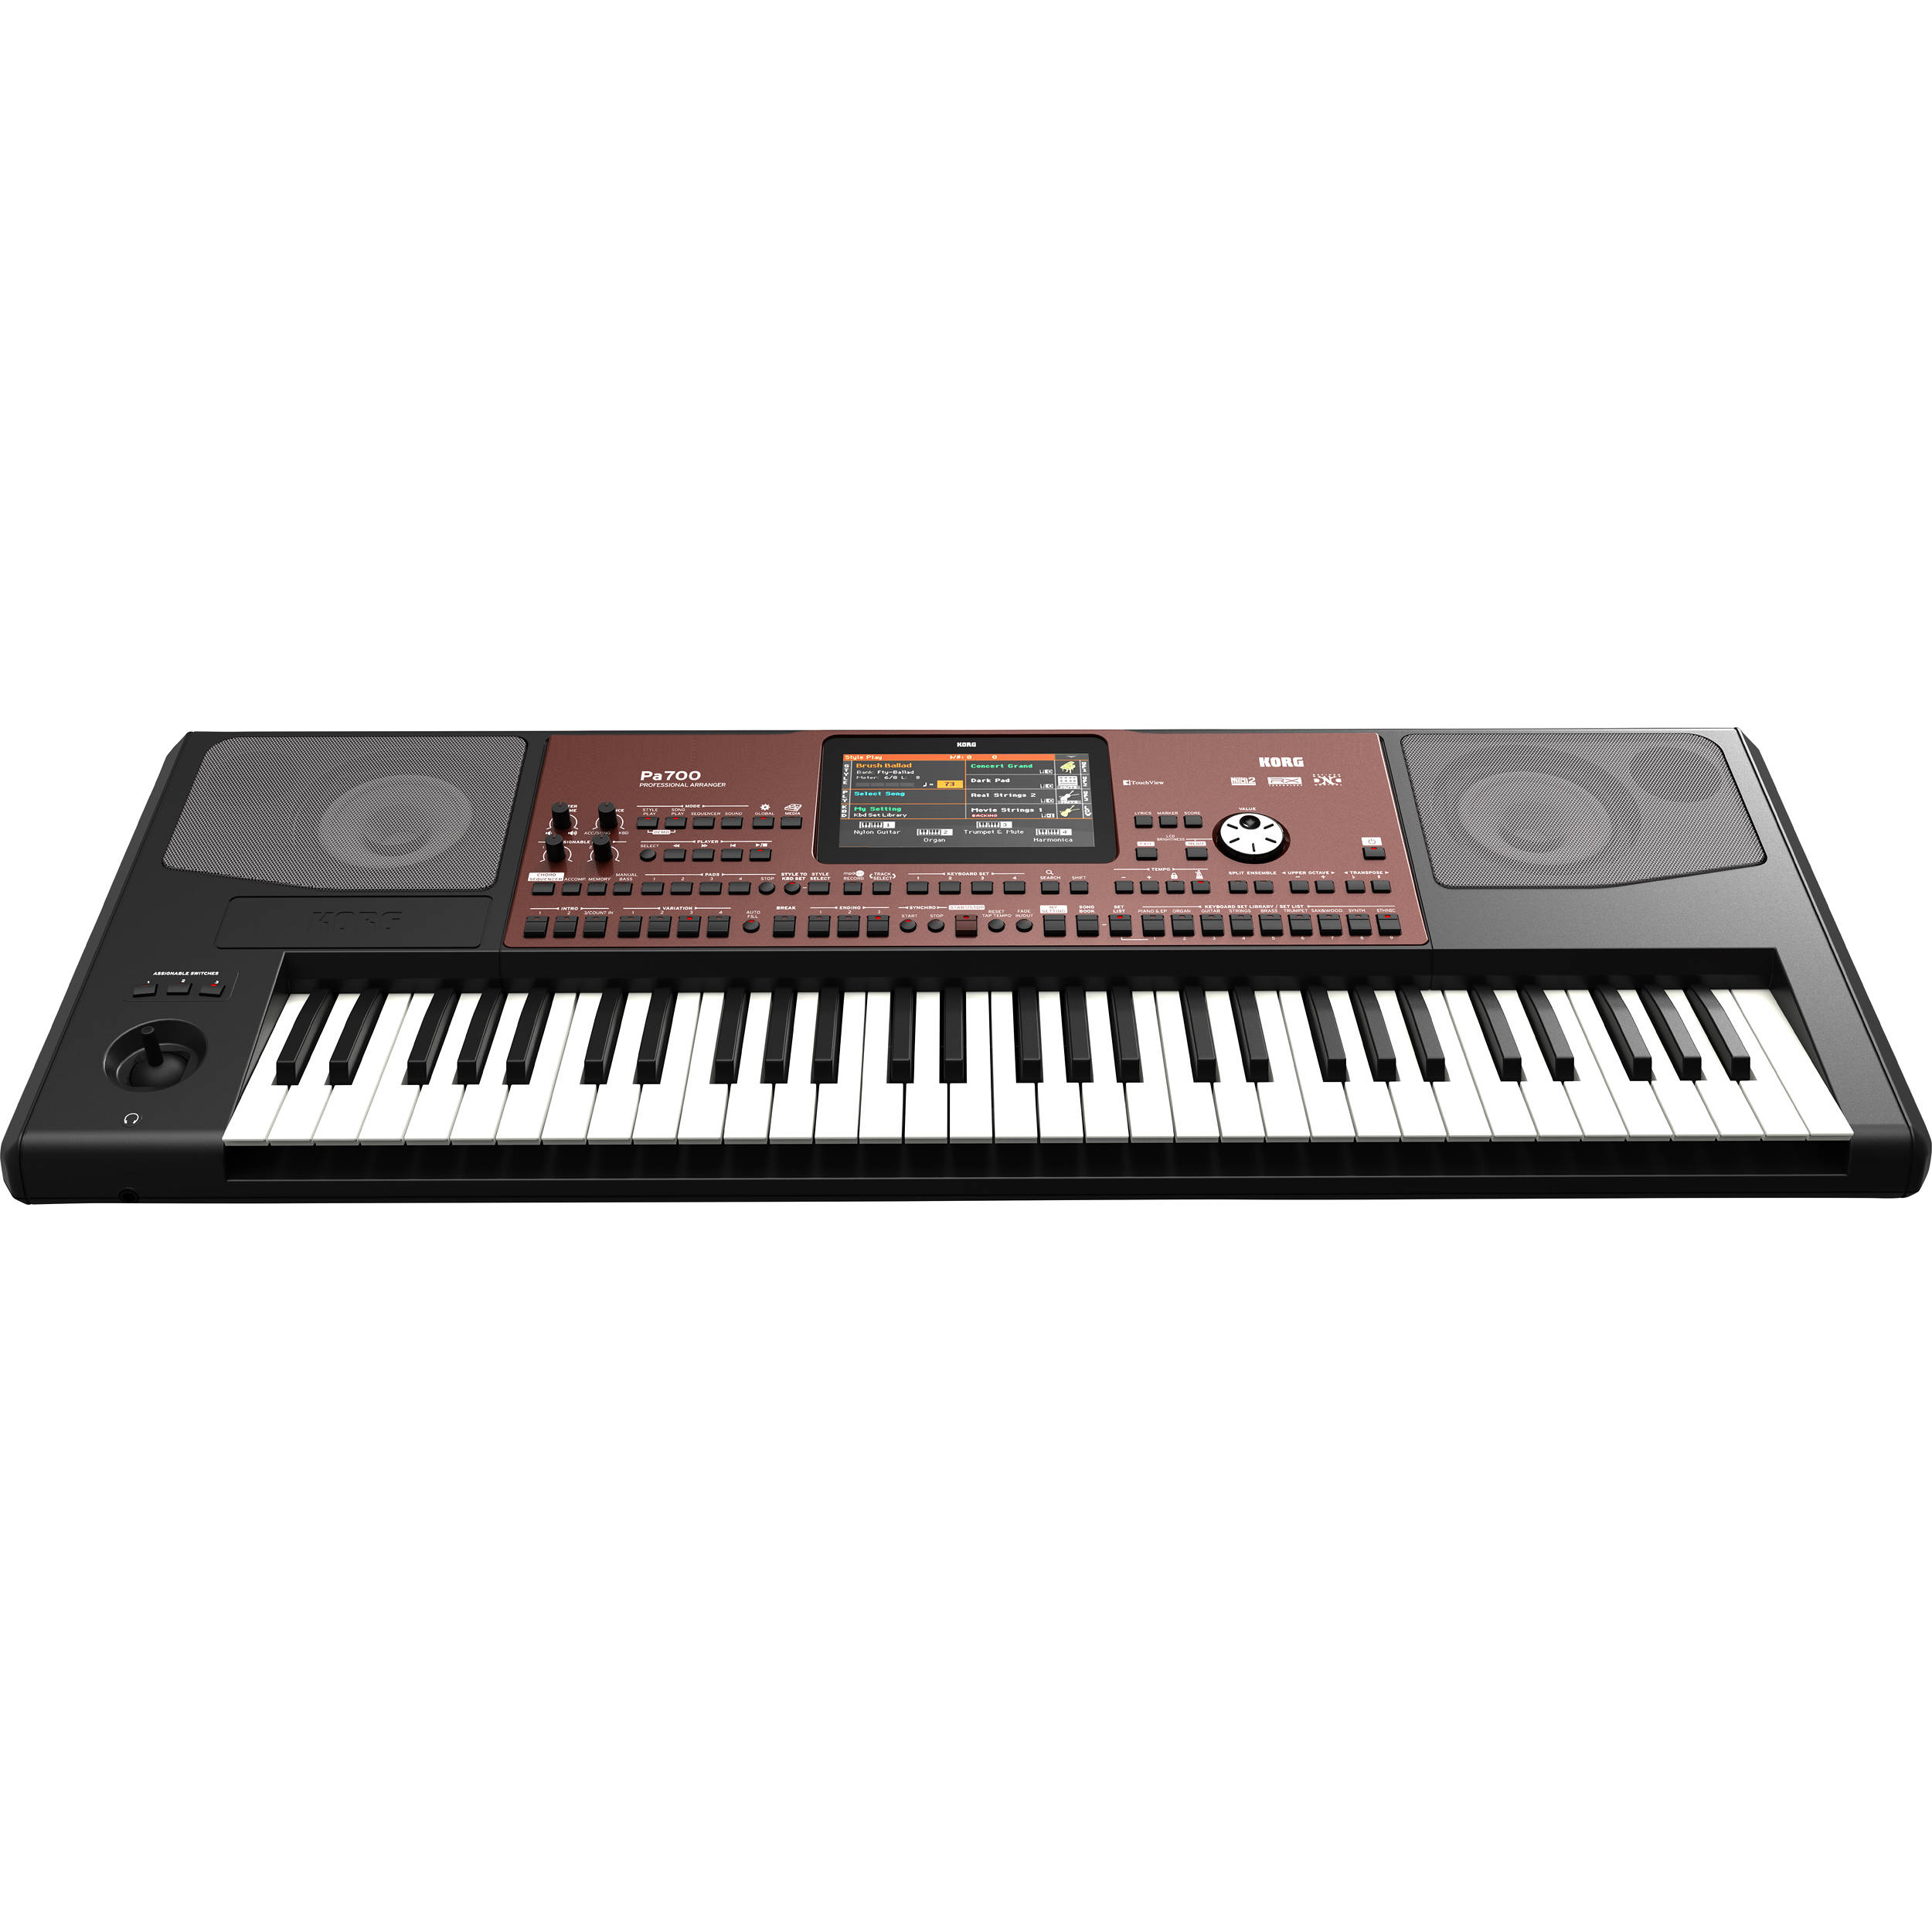 Korg Pa700 61-Key Professional Arranger with Touchscreen and Speakers